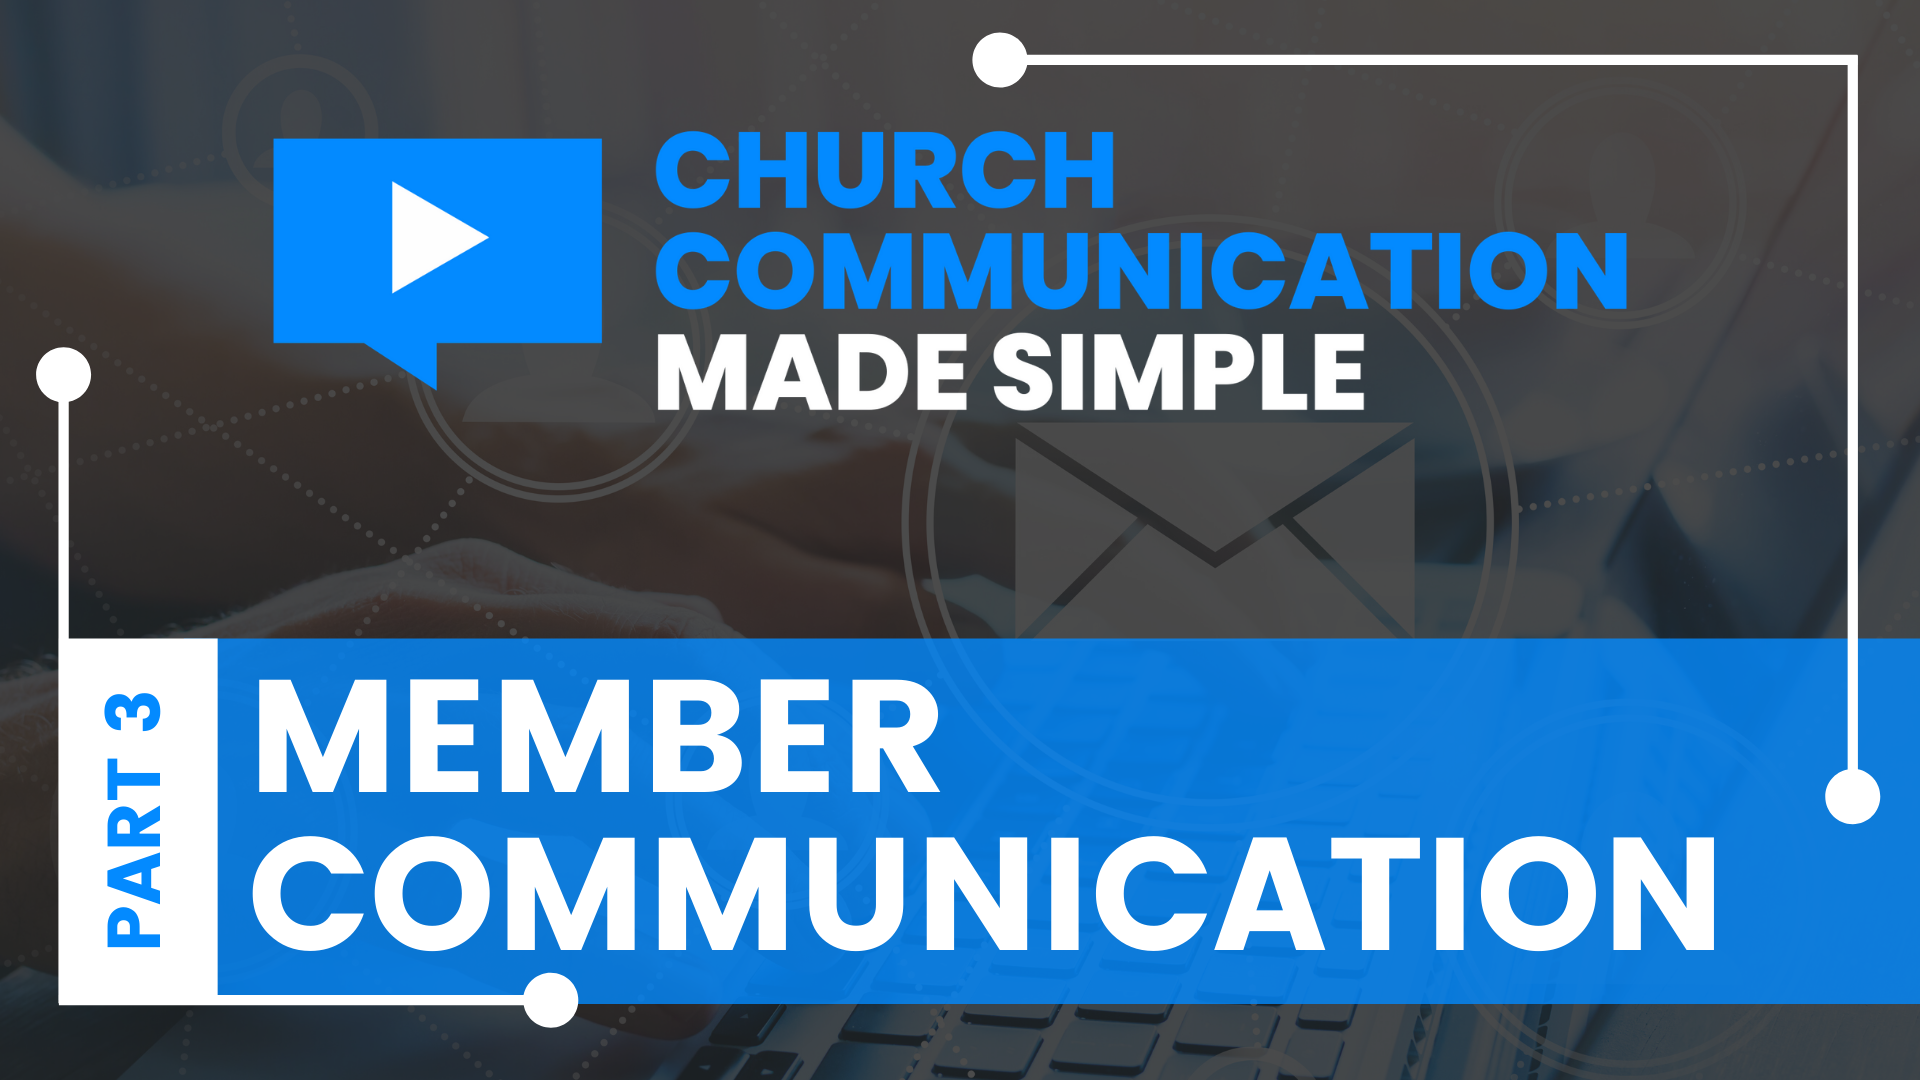 Member Communication